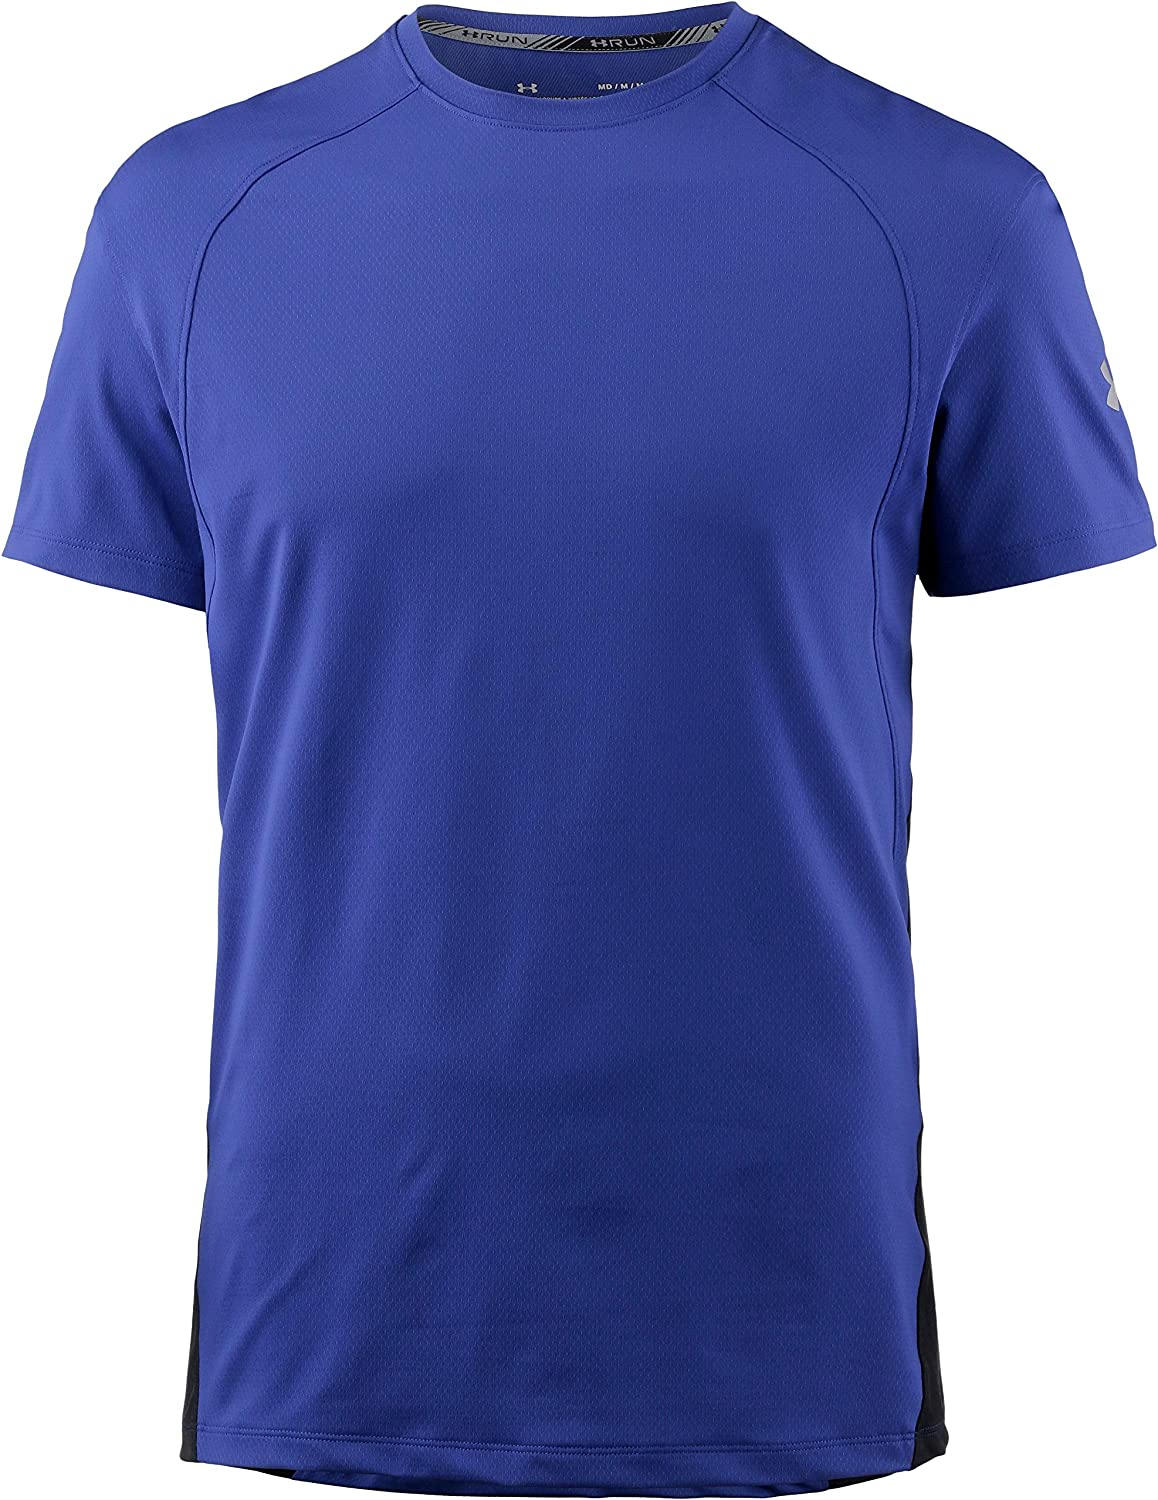 Under Armour Selling Men's Coolswitch Run Top V3 Sleeve Short Free Shipping New